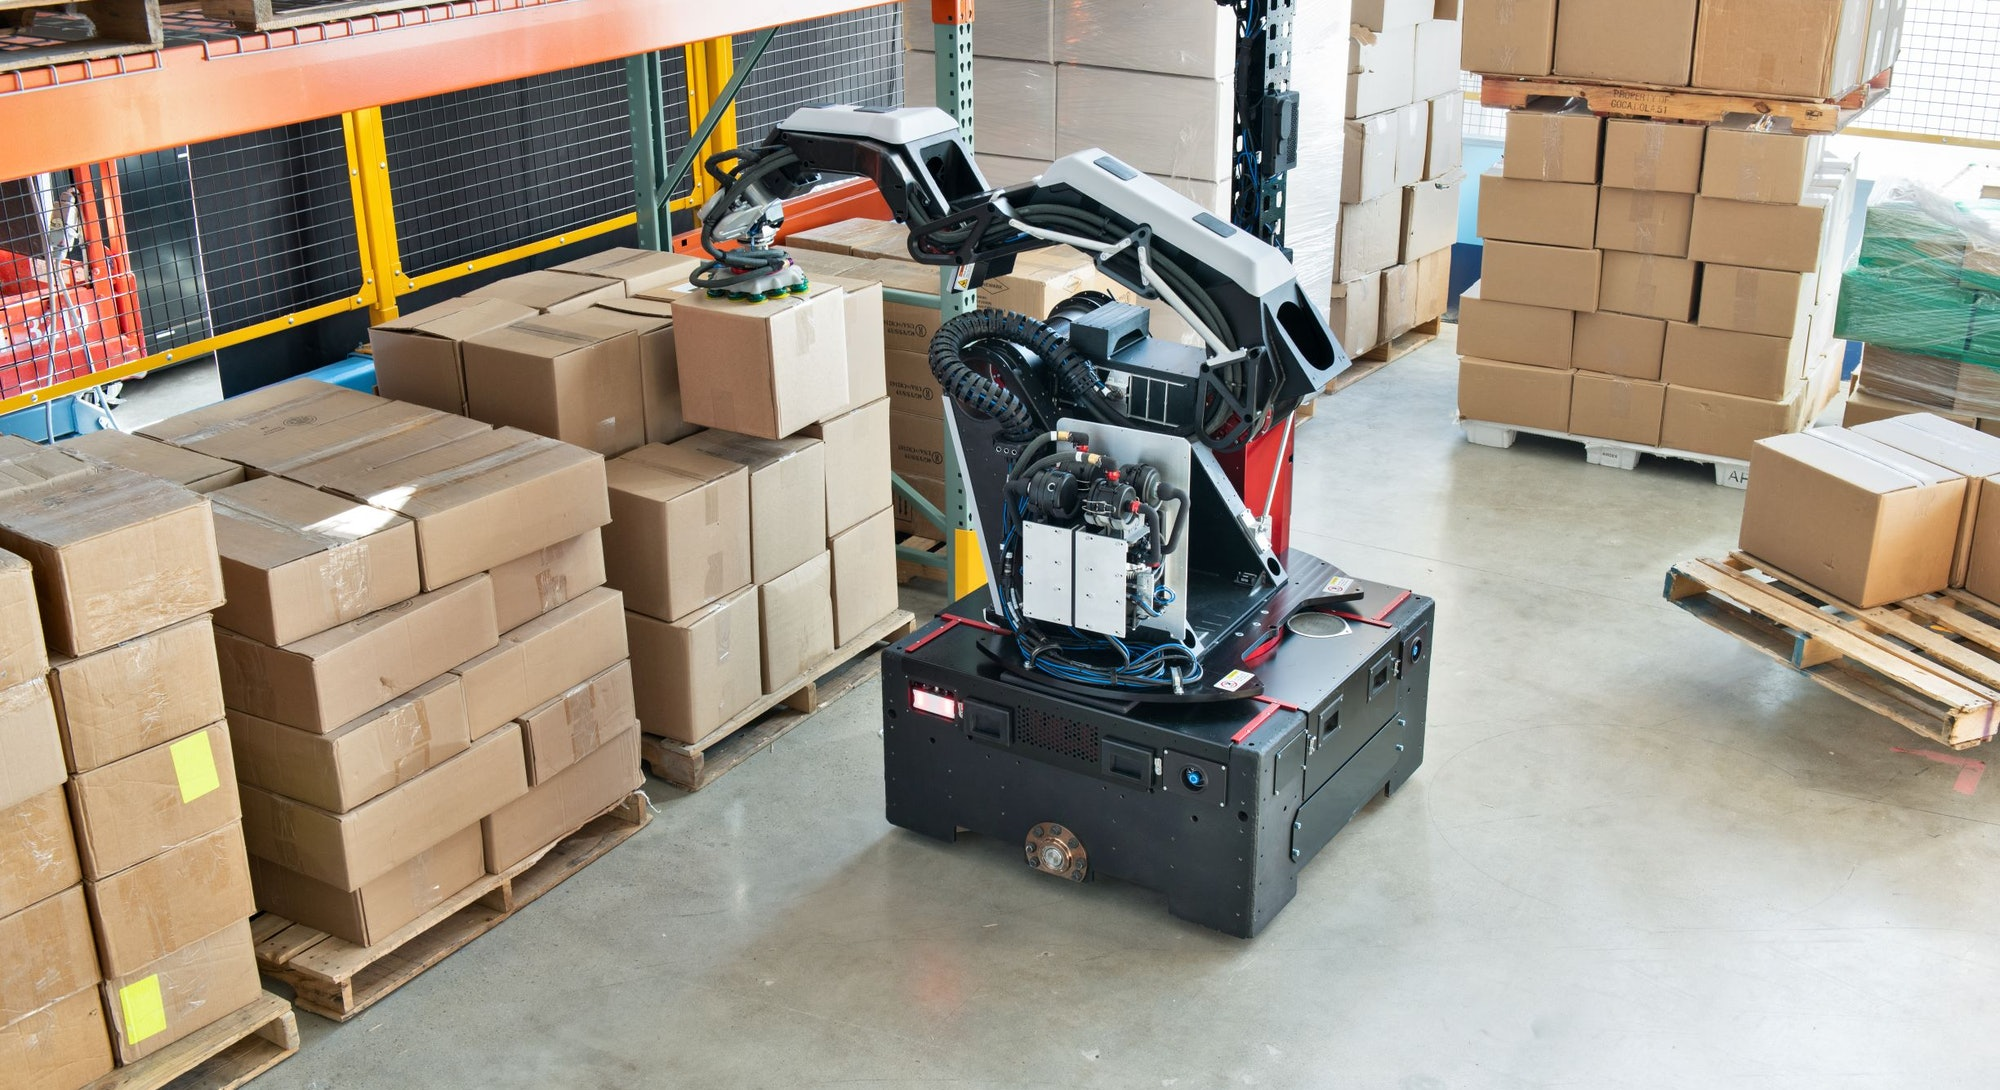 Boston Dynamics new warehouse robot, Stretch. Boston Dynamics. Robot. Robotics.